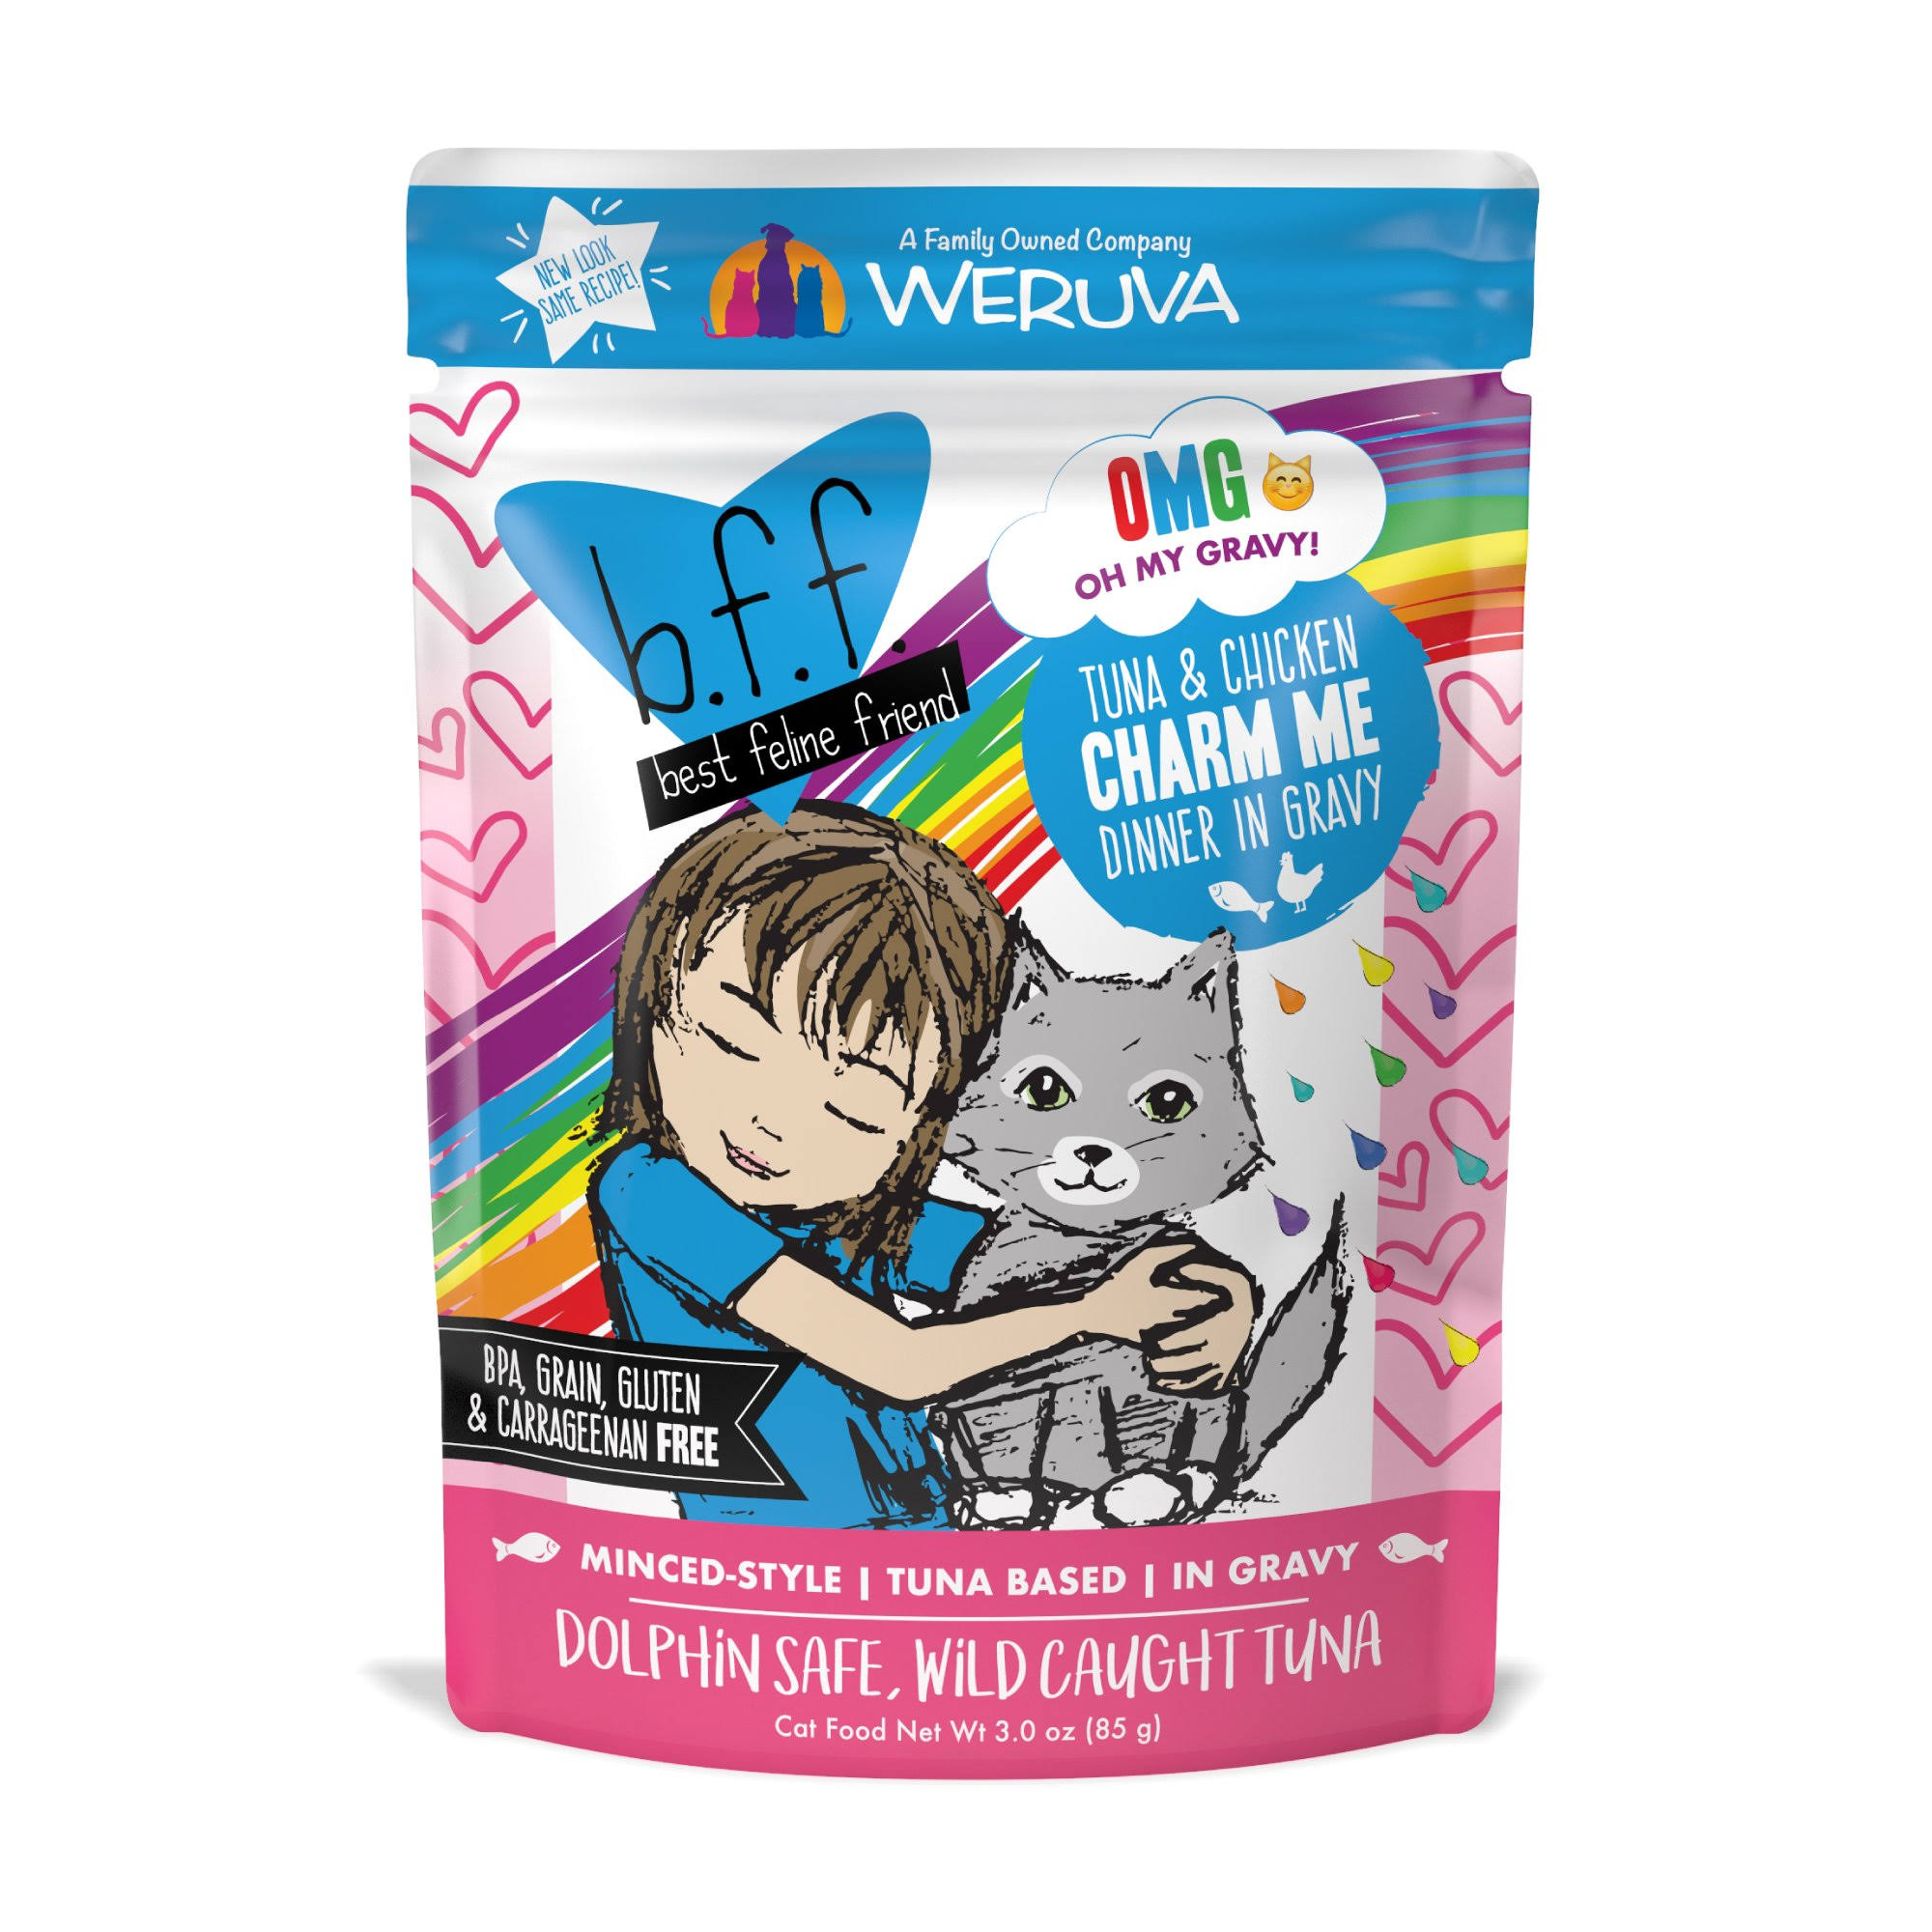 Best Feline Friend Grain Free Cat Food - Tuna and Chicken